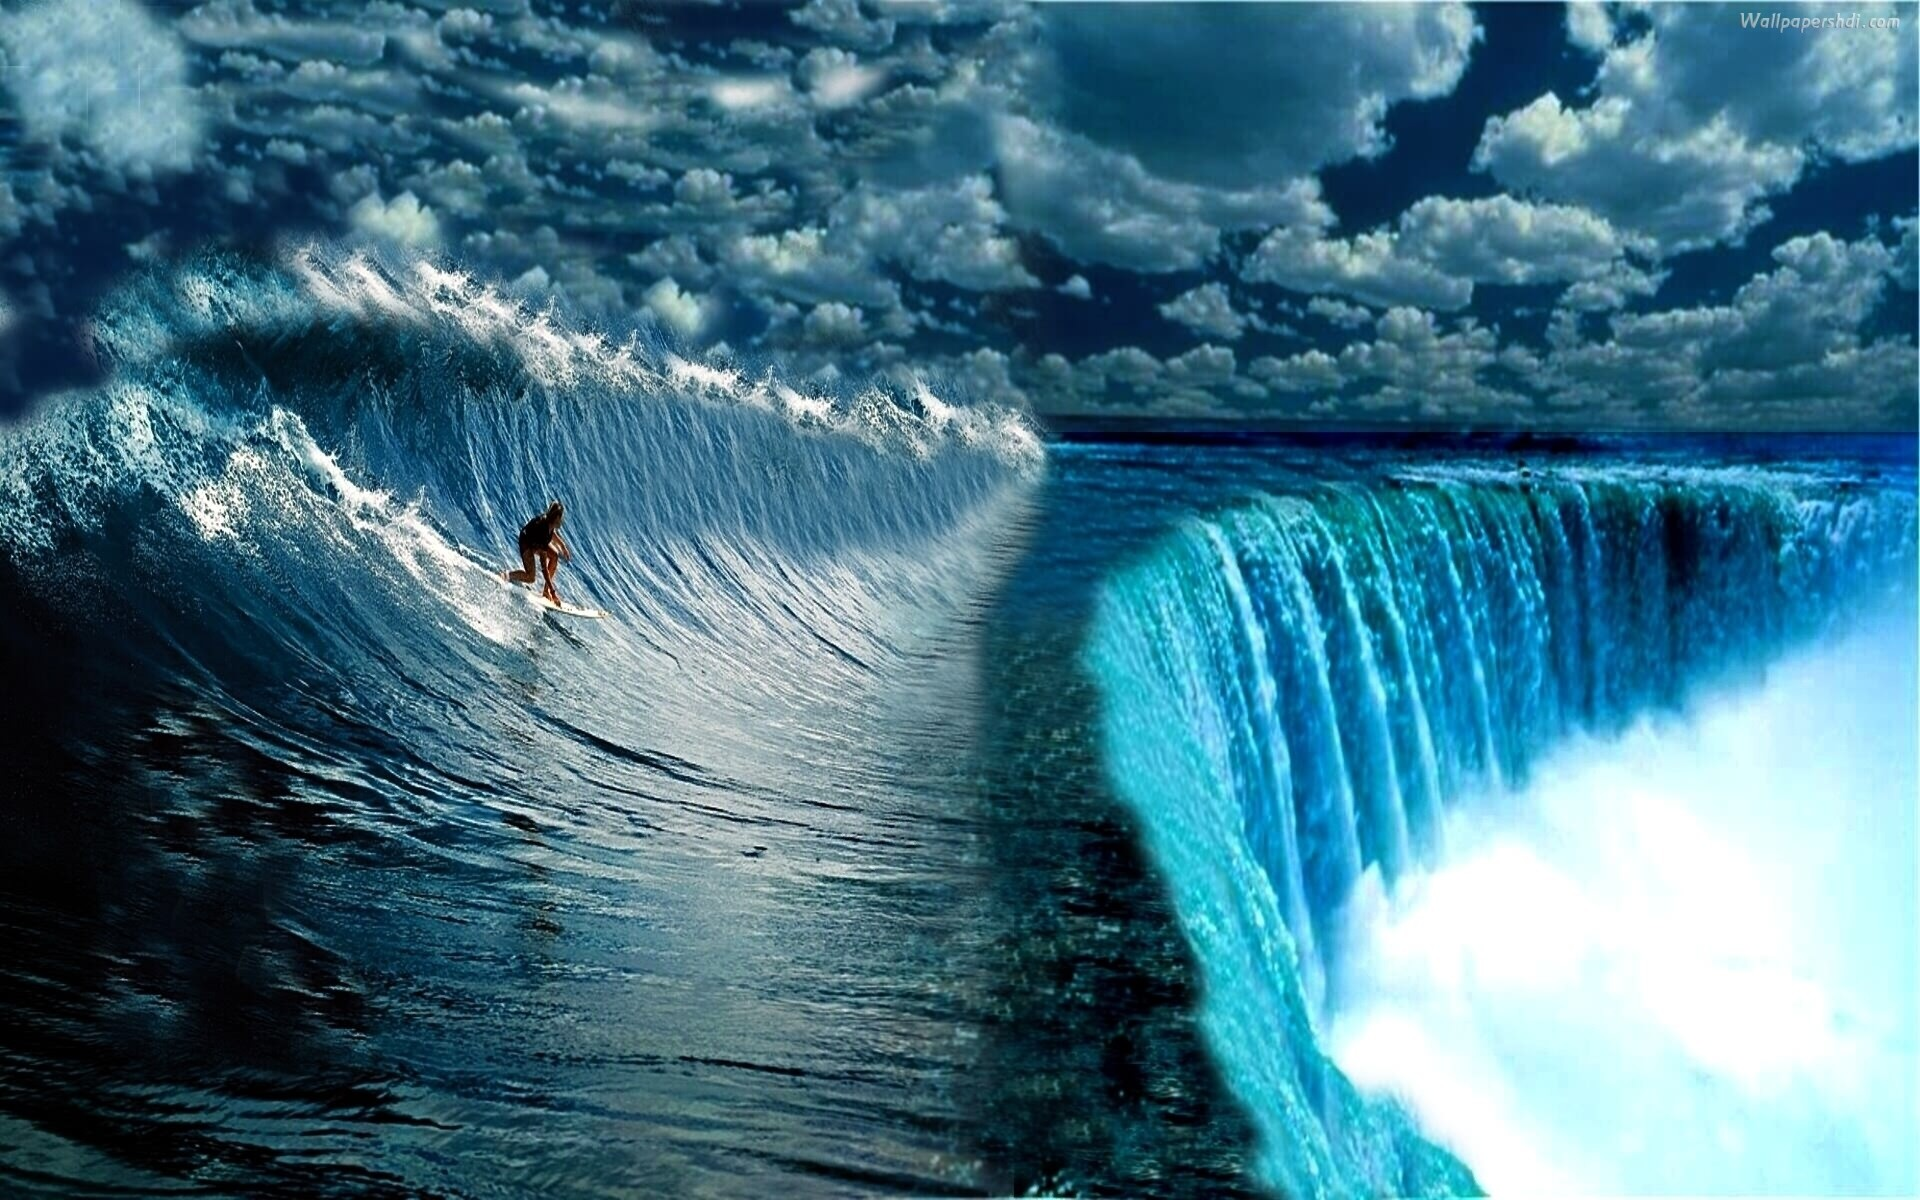 Free Surfing Wallpapers Desktop: HD Surf Wallpaper (69+ Images